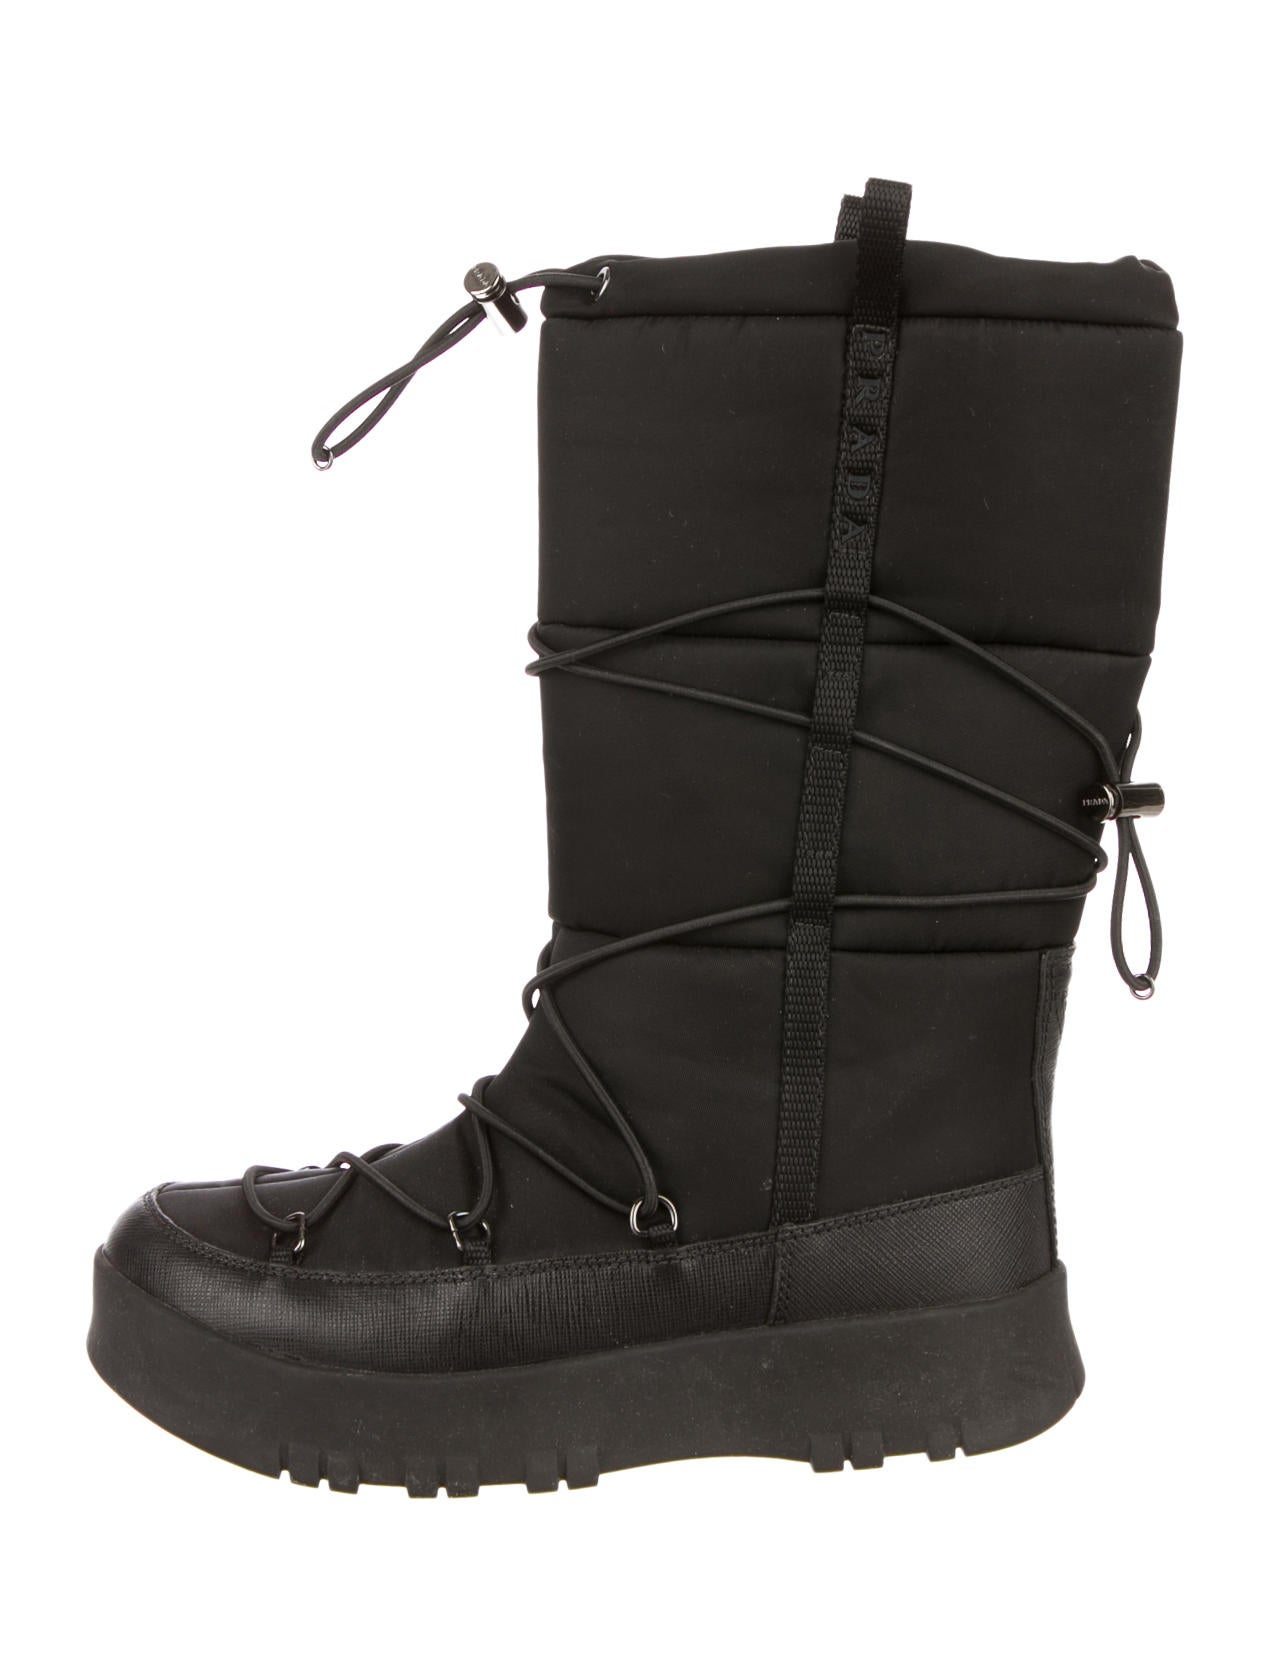 Prada Sport Snow Boots - Shoes - WPR21607 | The RealReal